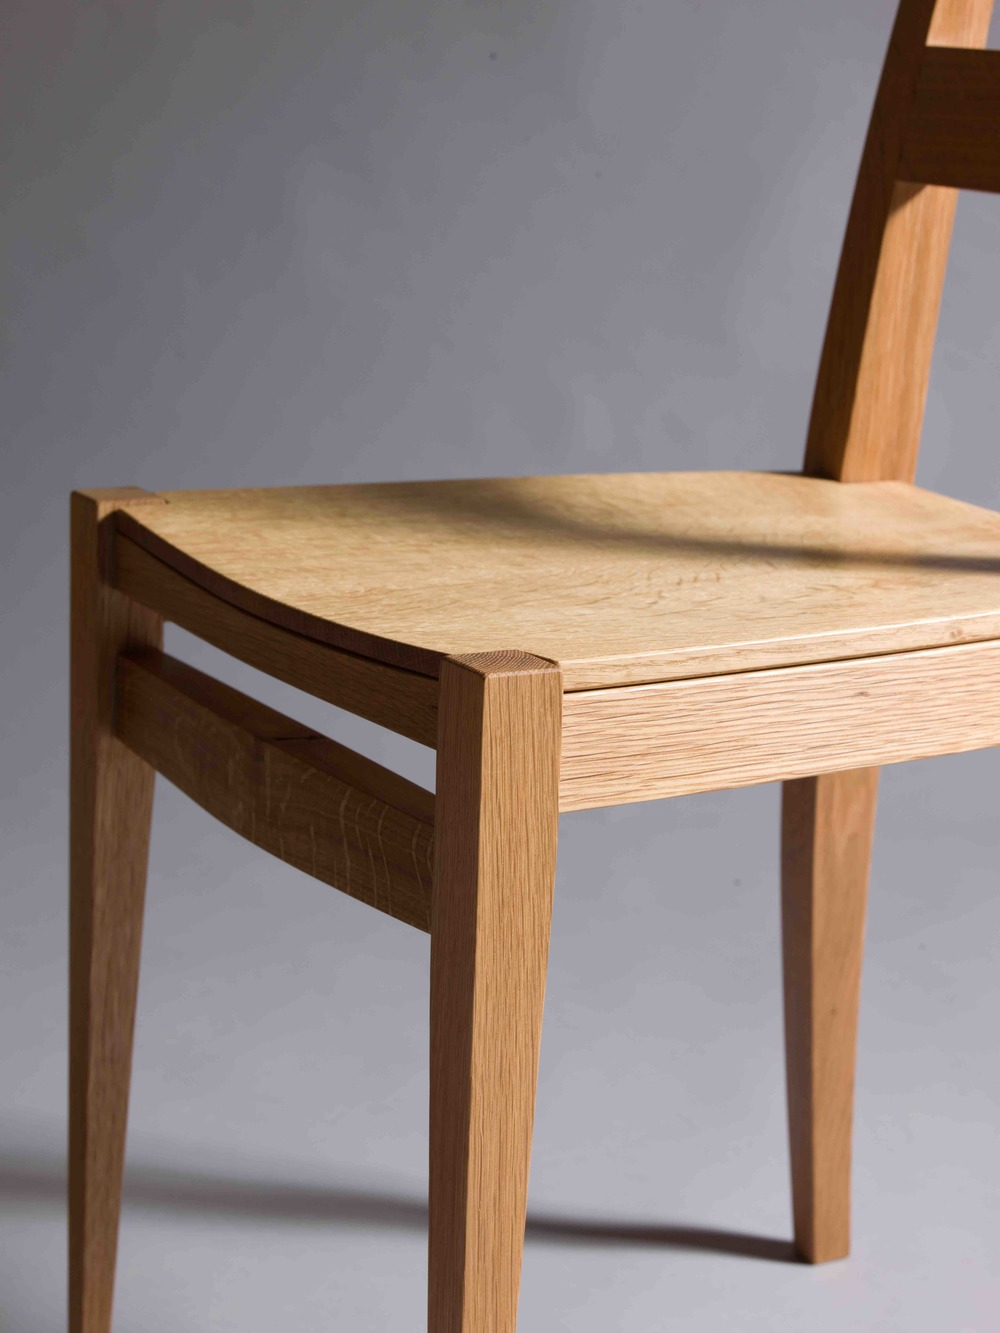 Oak Chair6 copy.jpg